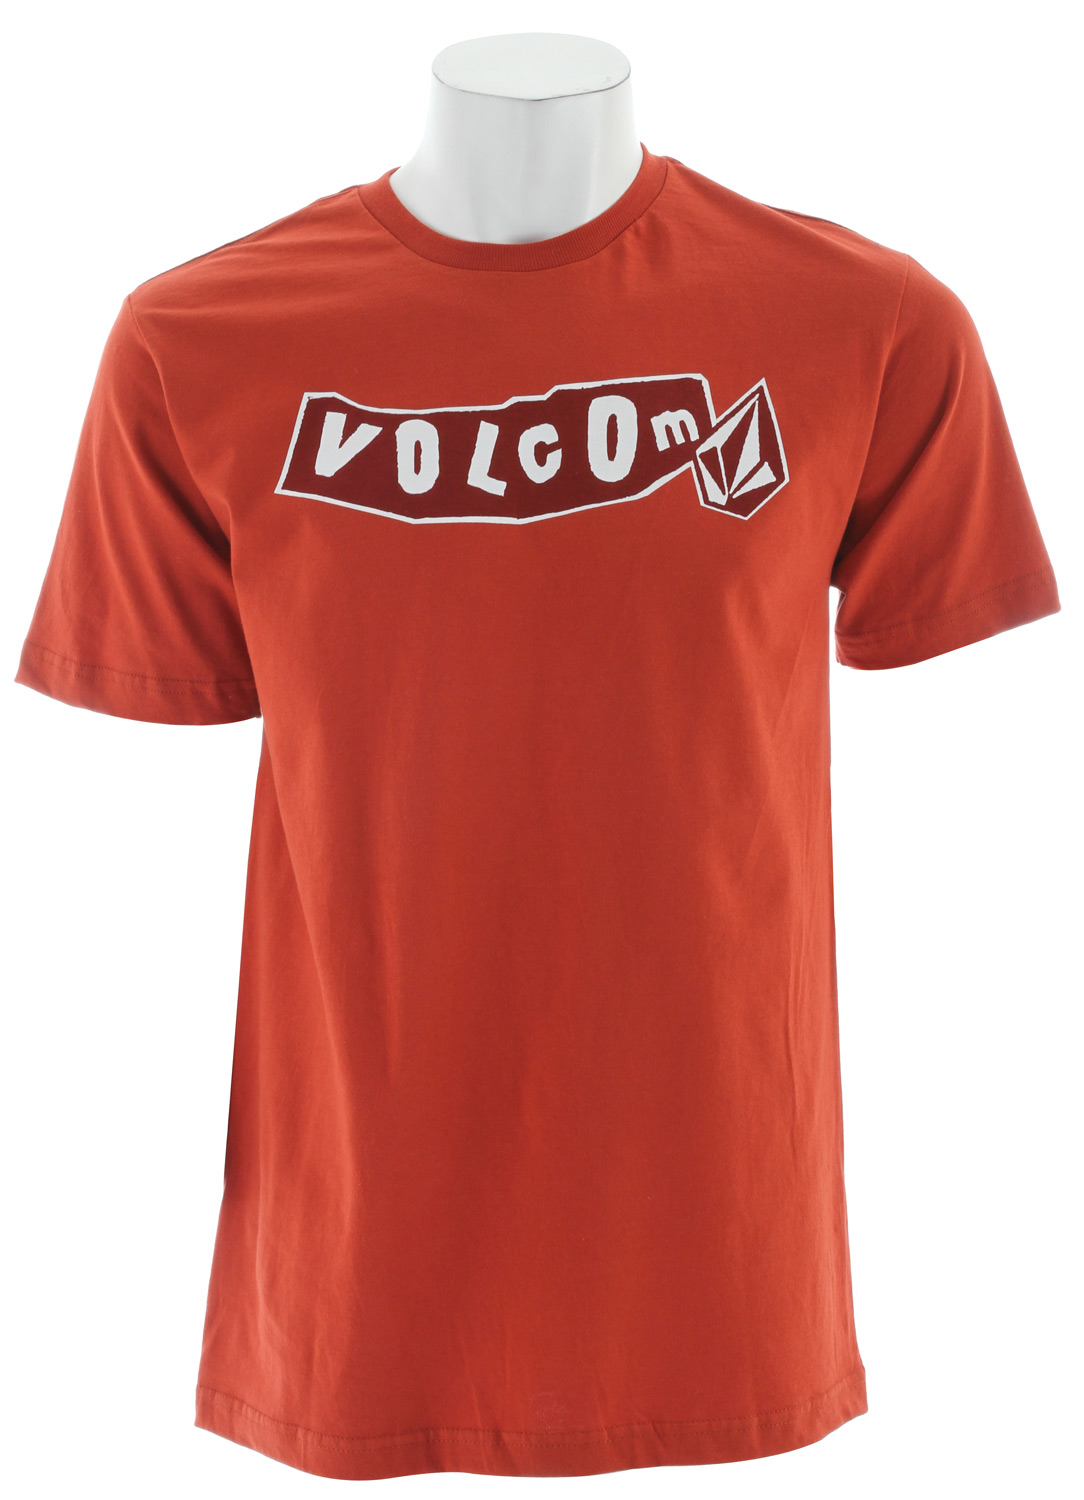 Surf Key Features of The Volcom The Pistol T-Shirt: Regular Fit Crew Neck Short Sleeve Basic screenprint Modern fit 100% cotton - $19.00